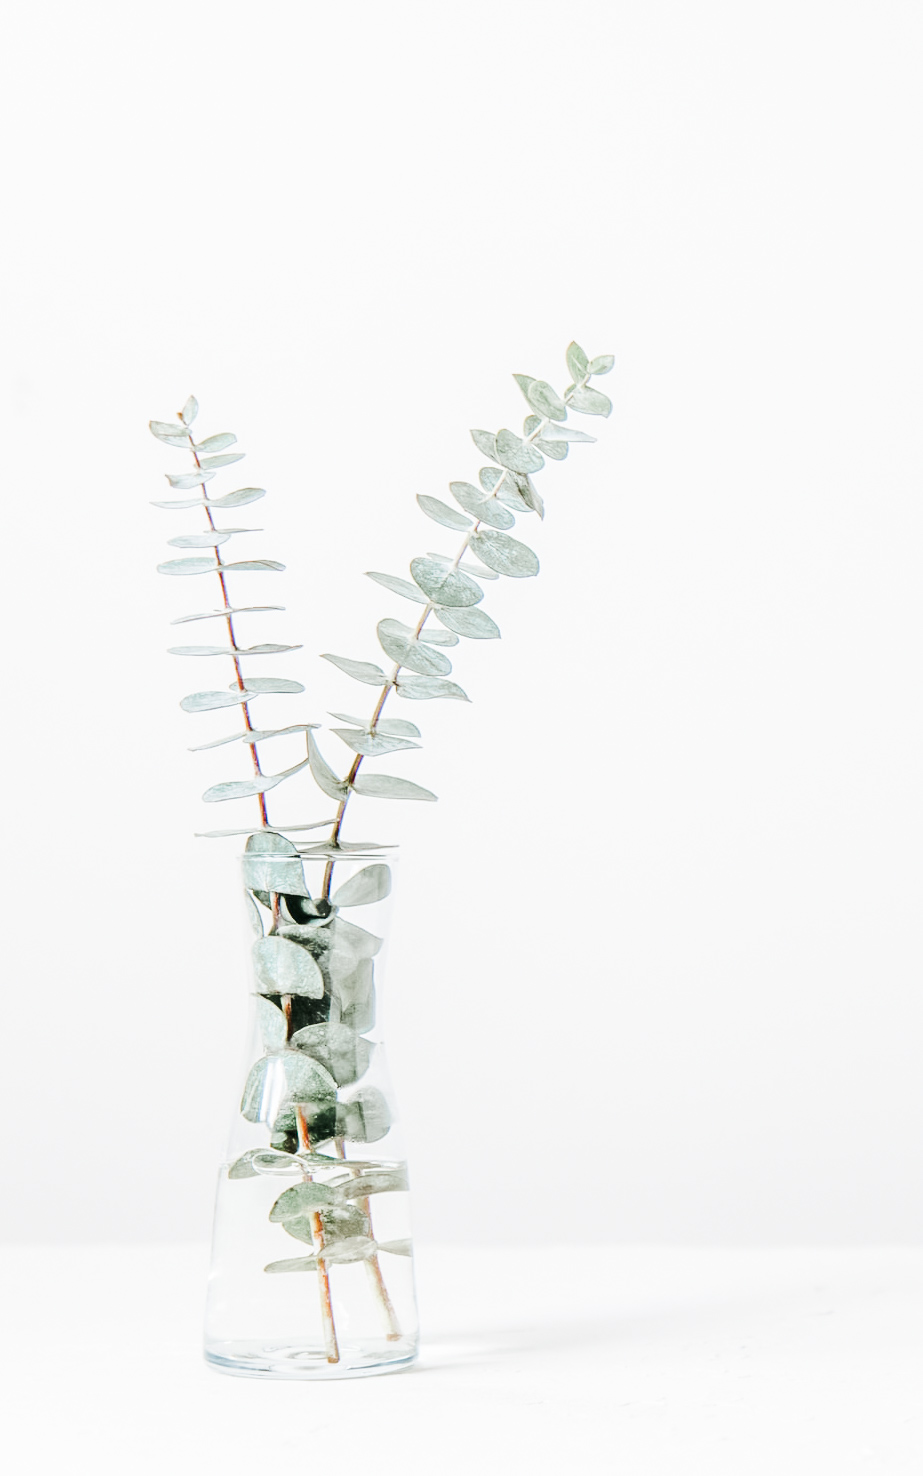 Eucalyptus branches in a glass